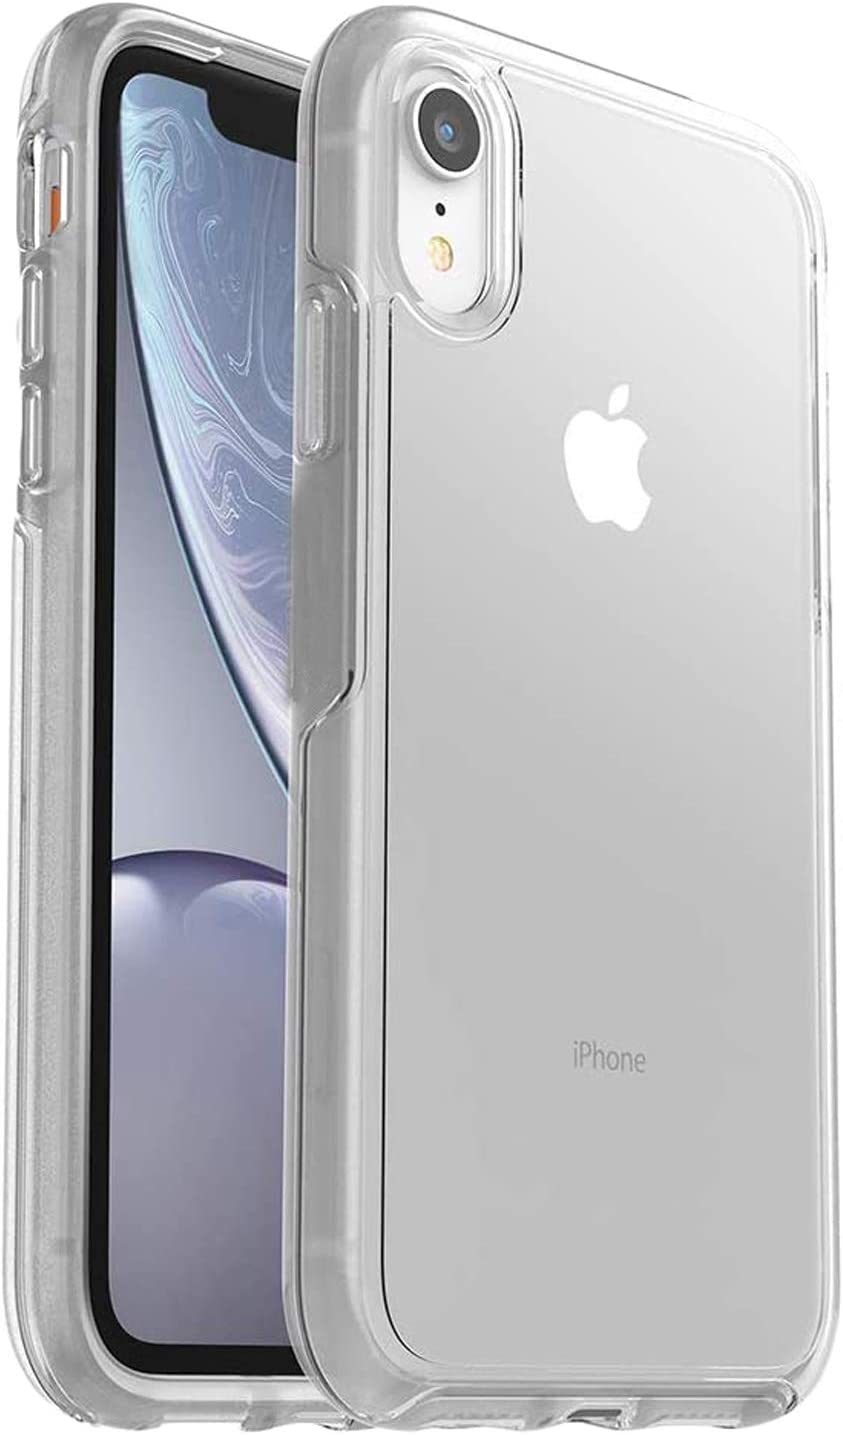 Phone Protective Case for iPhone XR, Symmetry Clear Series Case for iPhone XR, Clear Anti-Drop Shock Absorption Phone Cover for iPhone XR